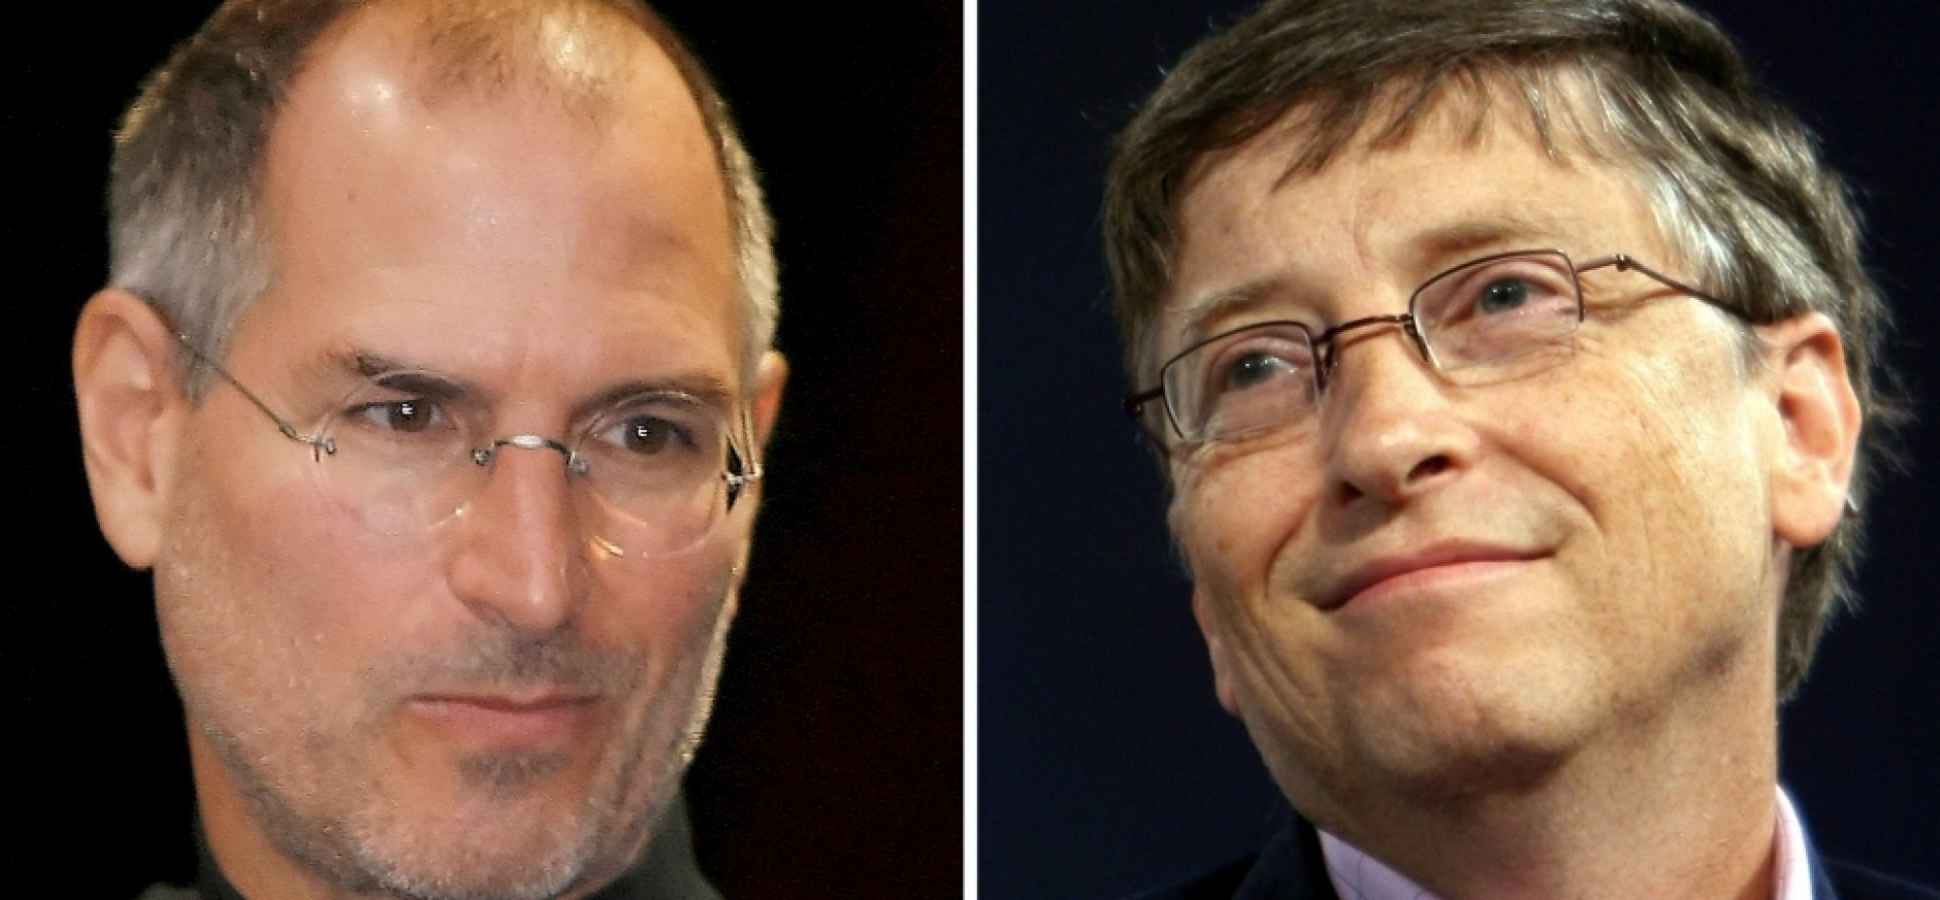 50 Brilliant Tweets Quoting Steve Jobs, Bill Gates, Warren Buffett, and Richard Branson